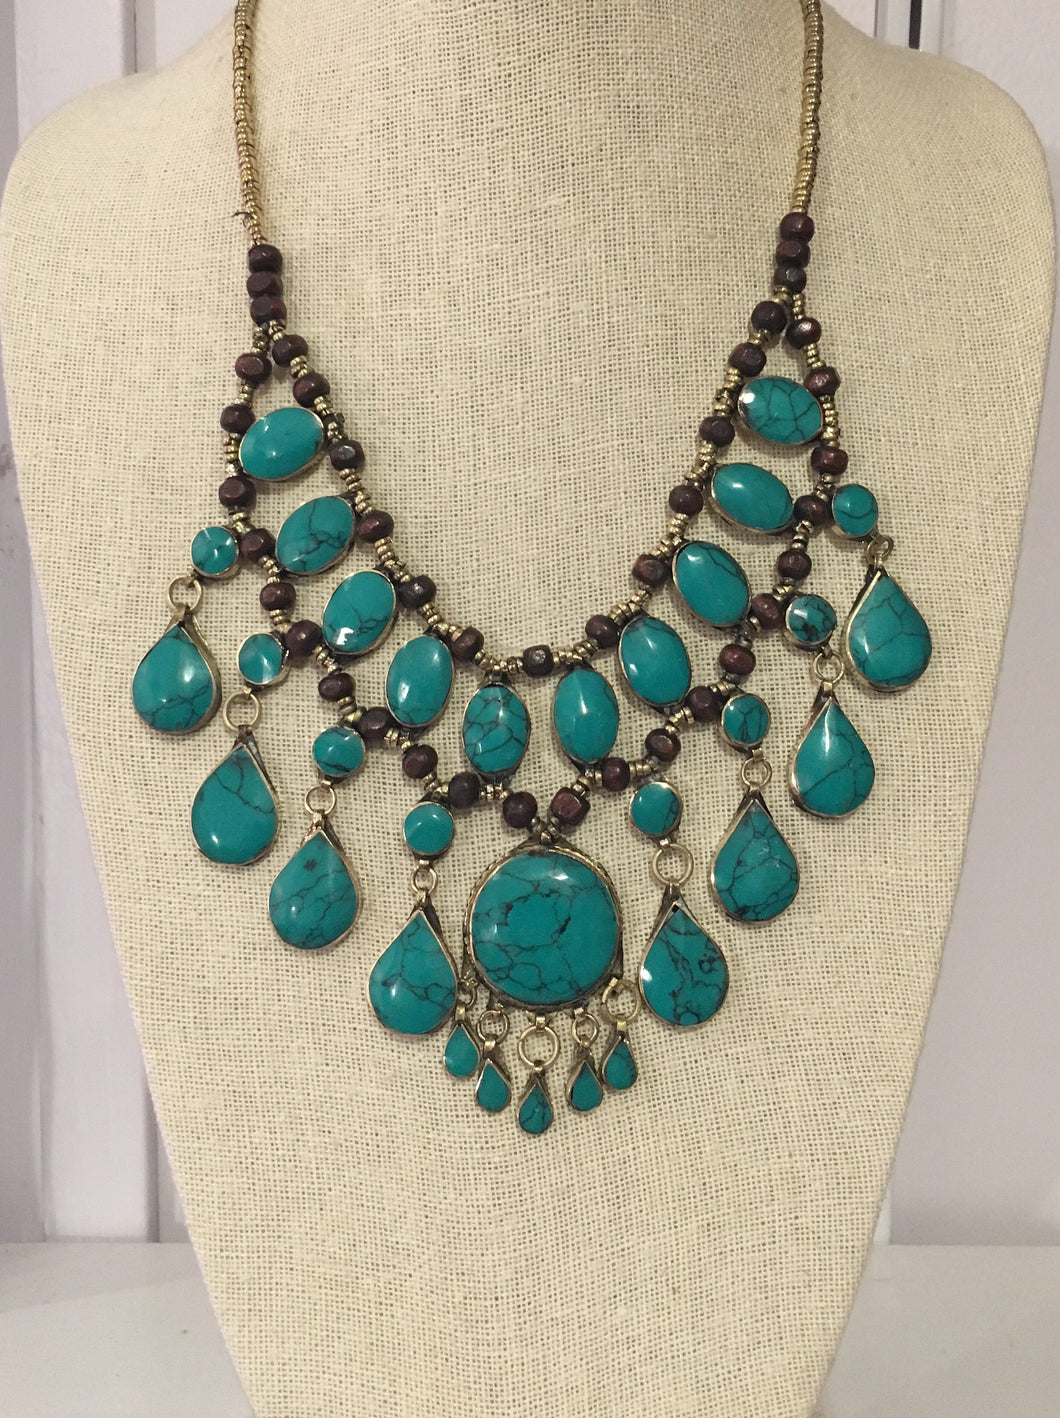 Jafar Necklace in Jade Green